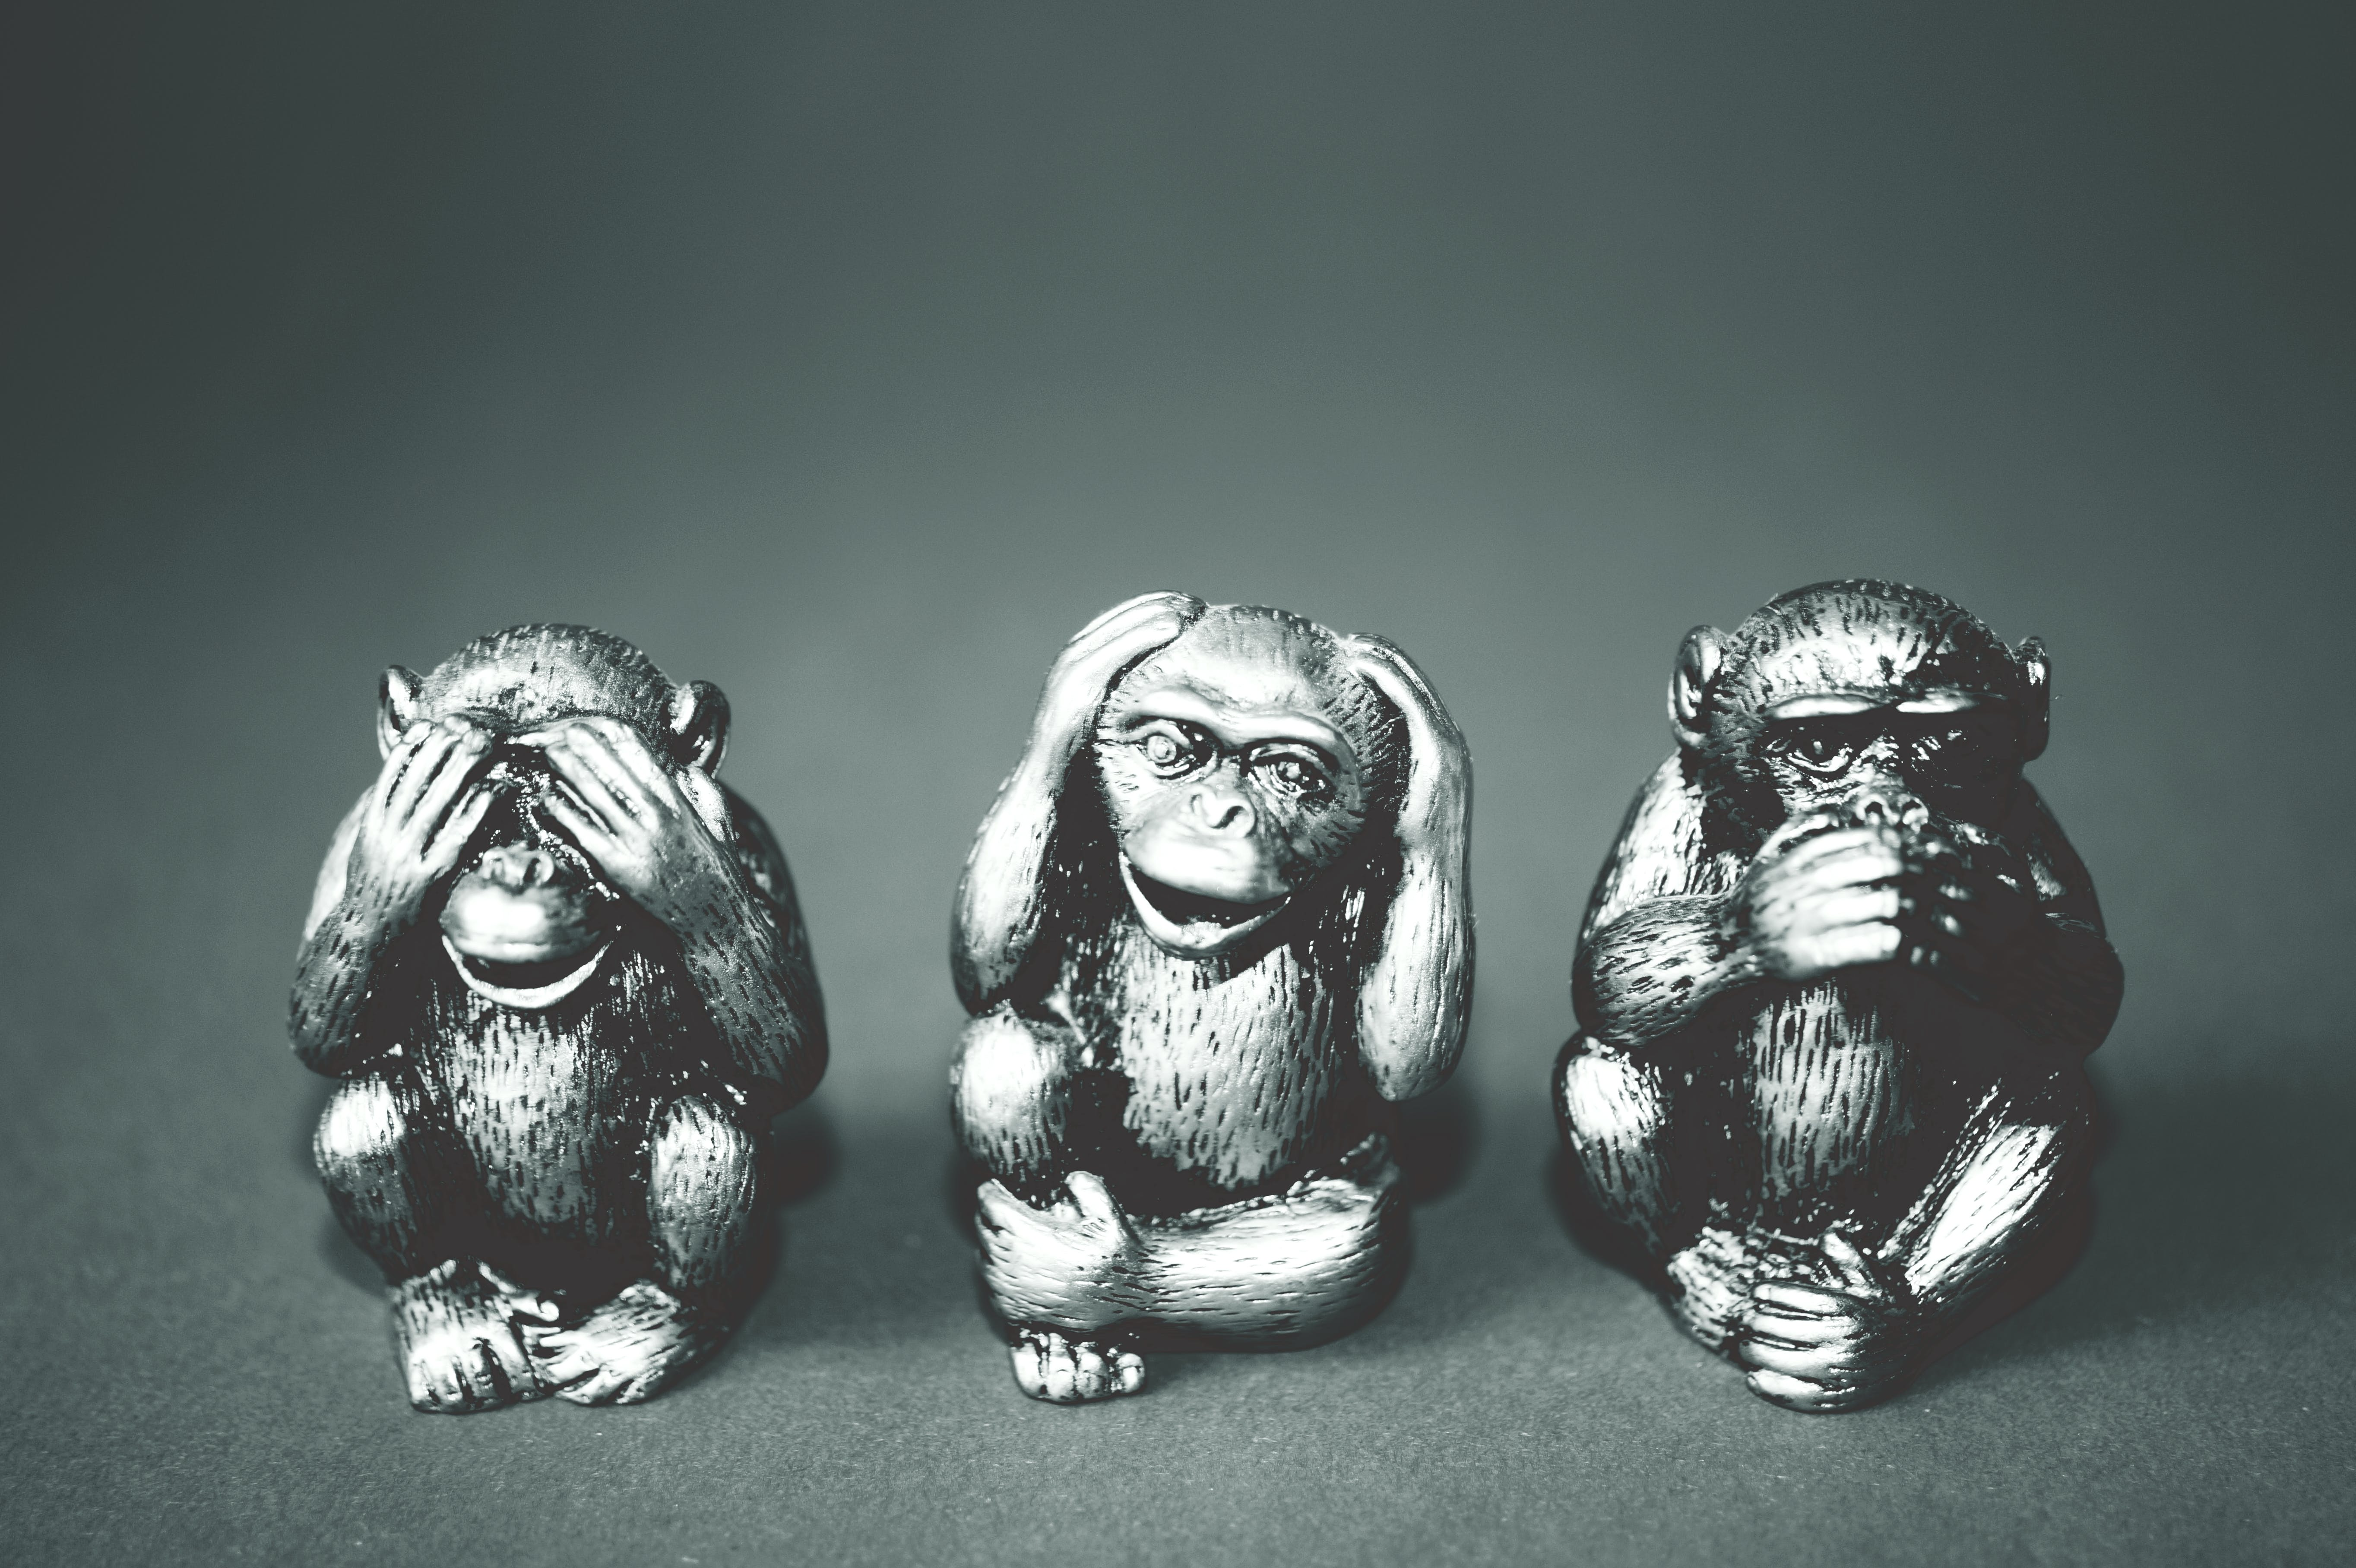 Grayscale Photography of Three Wise Monkey Figurines